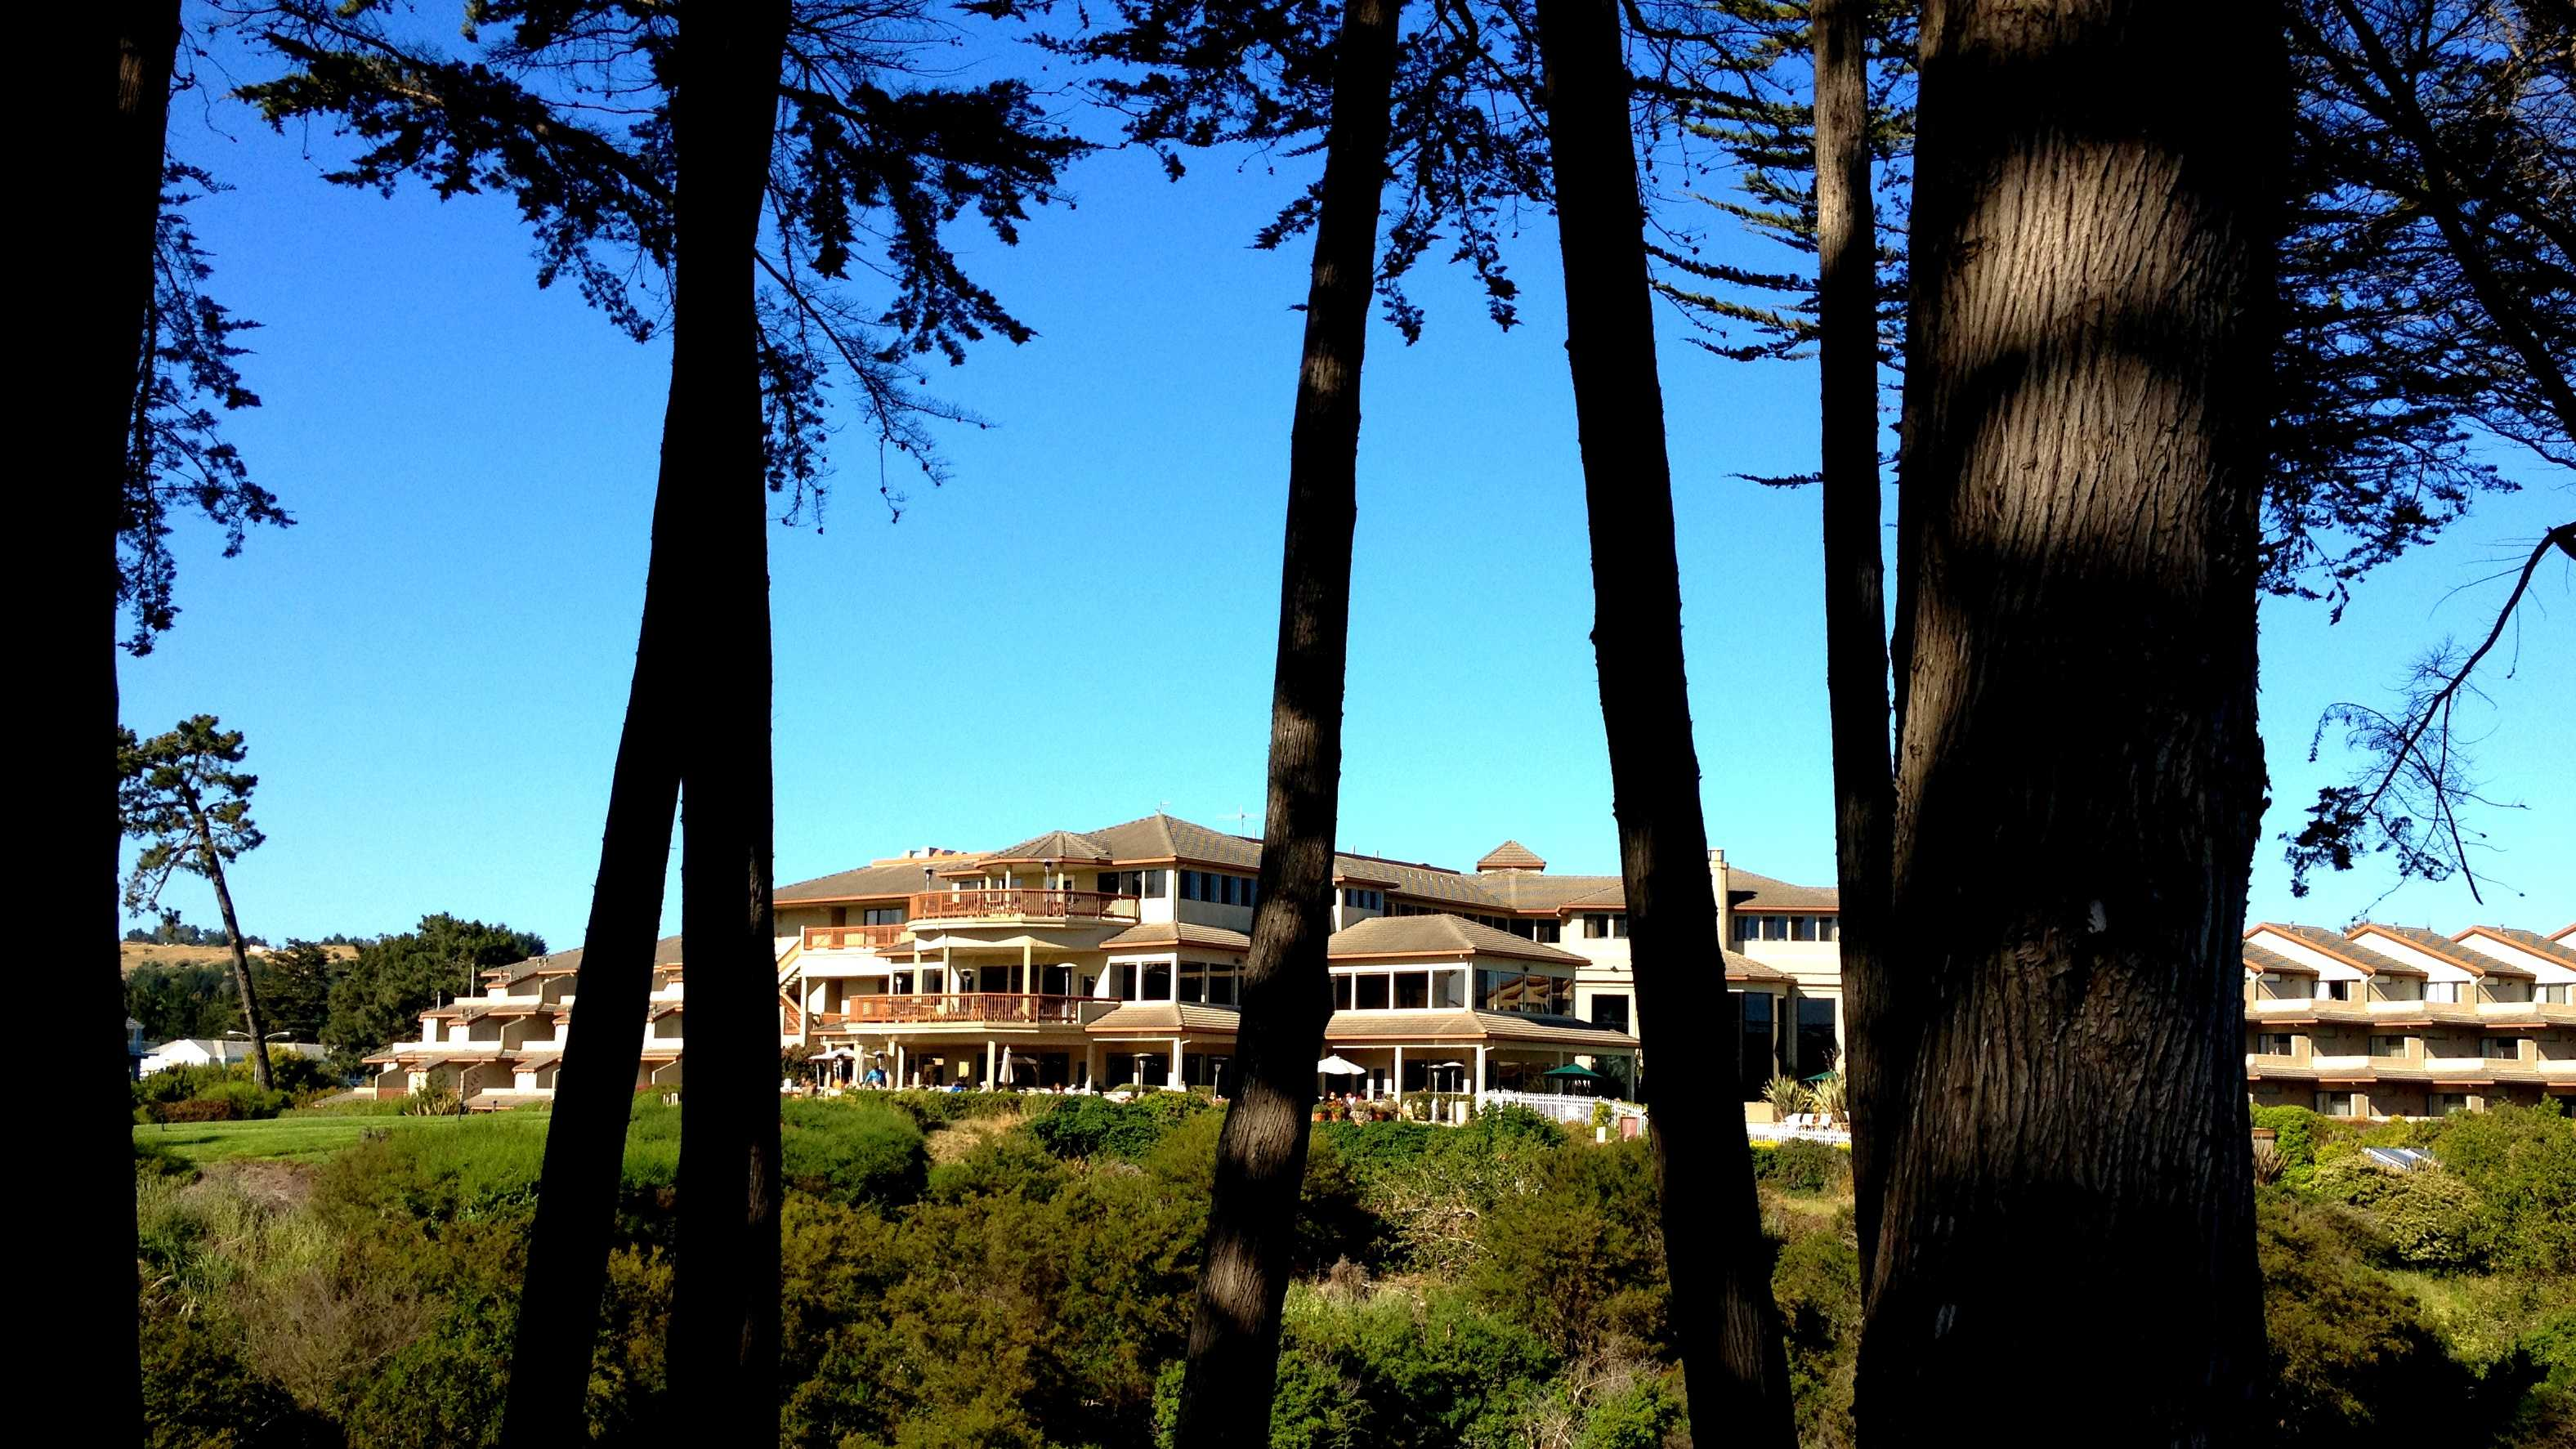 This is the Seascape Beach Resort, a luxury oceanfront hotel in Aptos whereSandoval spent the night with a 21-year-old Santa Cruz County woman.